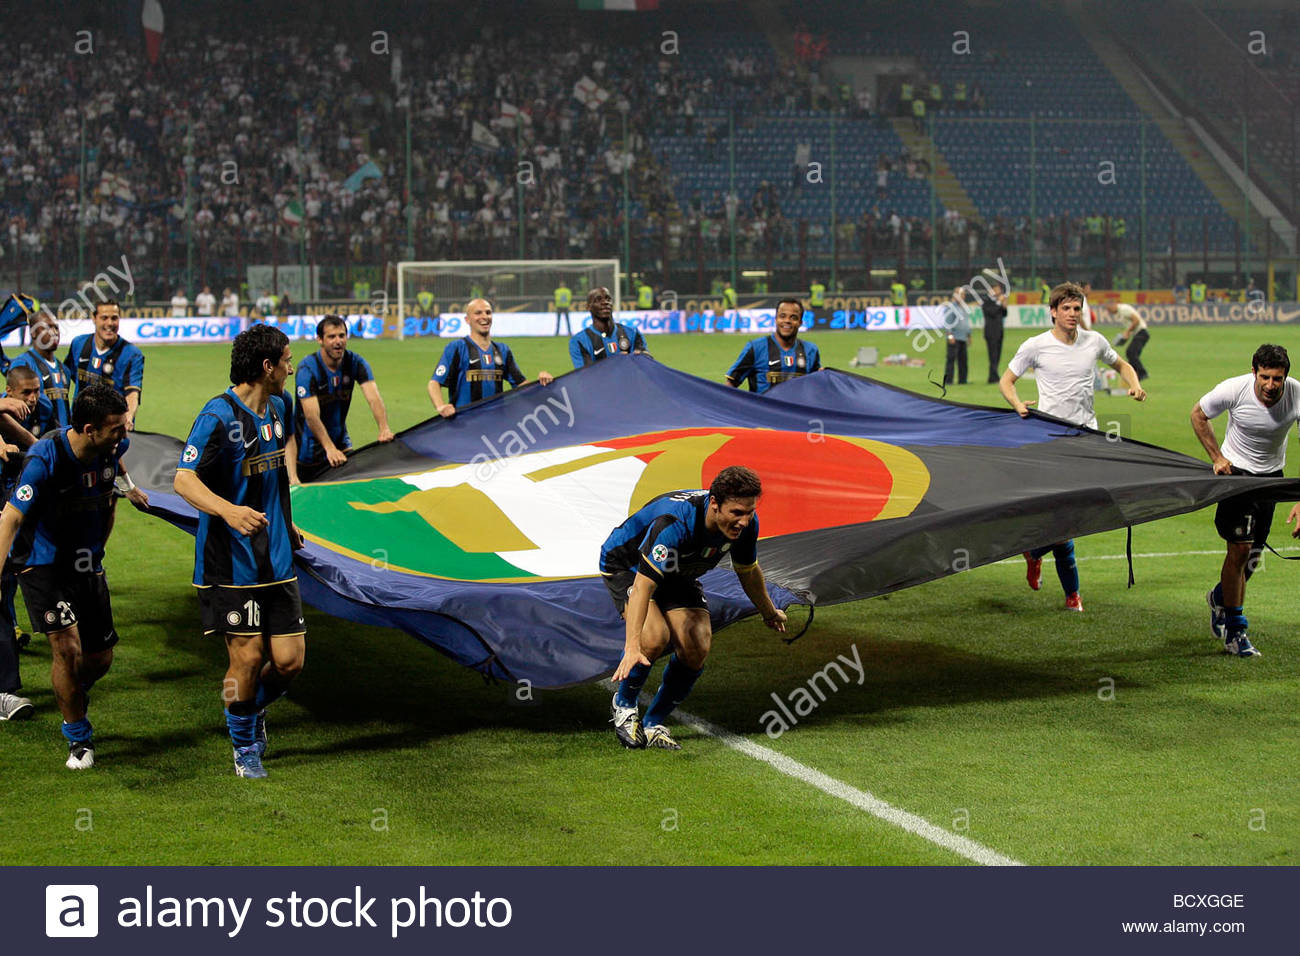 inter players celebrating the scudetto, milano 2009, serie a football championship 2008-2009, inter-siena 3-0 - Stock Image